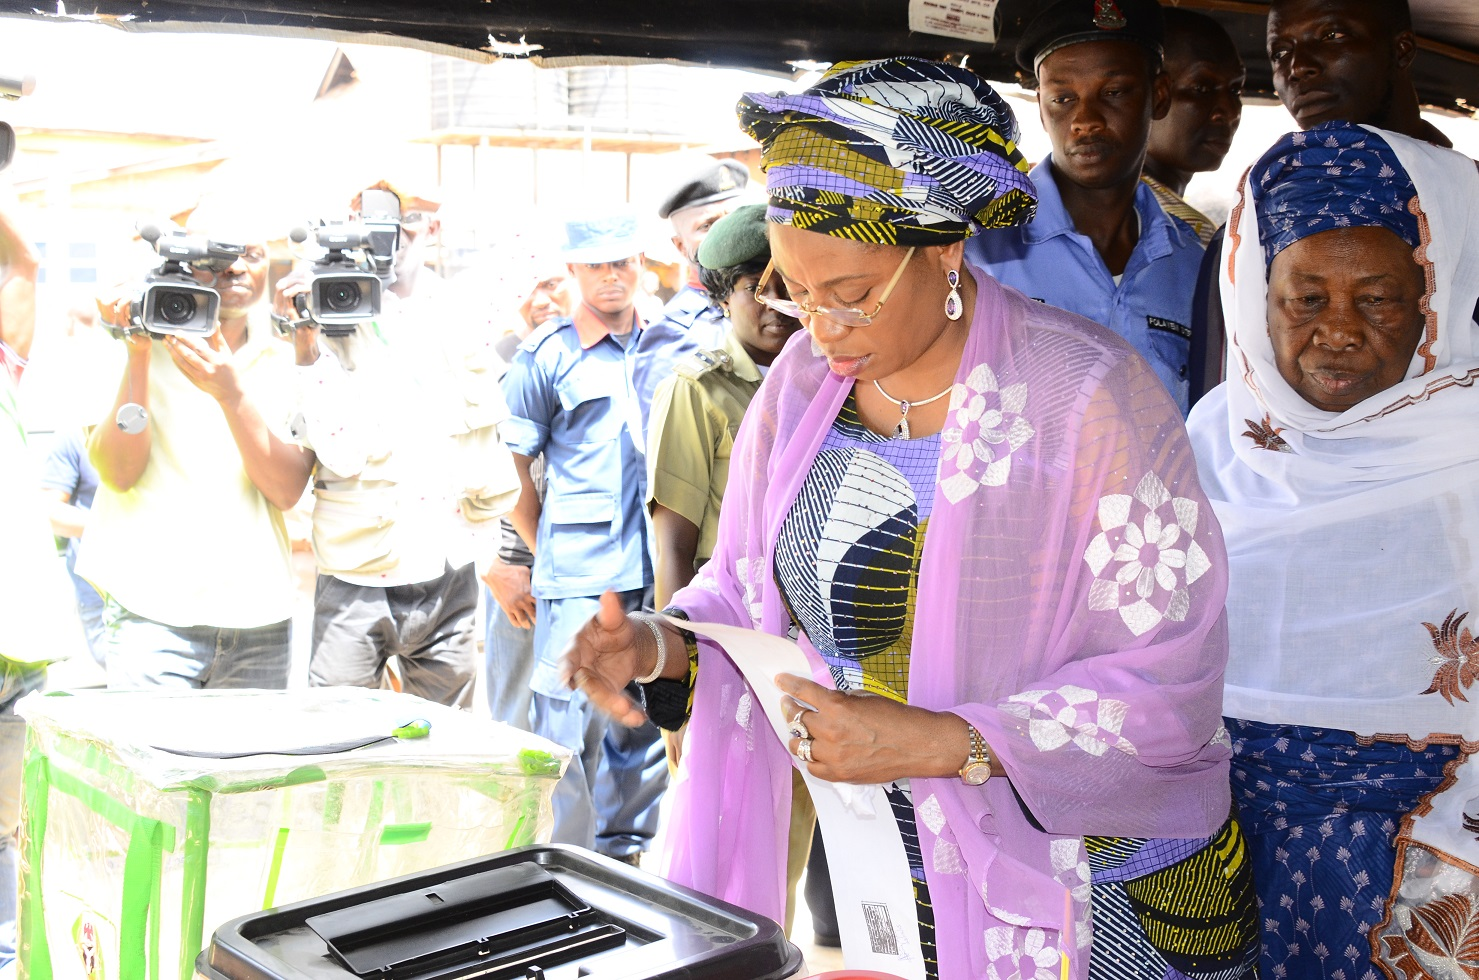 Wife of the Governor, State of Osun, Sherifat  Aregbesola and Aregbesola's Mother, Alhaja Sarat,  casting votes at  Unit 4, Ward 8, Ifofin, Ilesa East Local Government Area, State of Osun, during the Presidential and National Assemblies Elections,on Saturday, 28/03/2015.